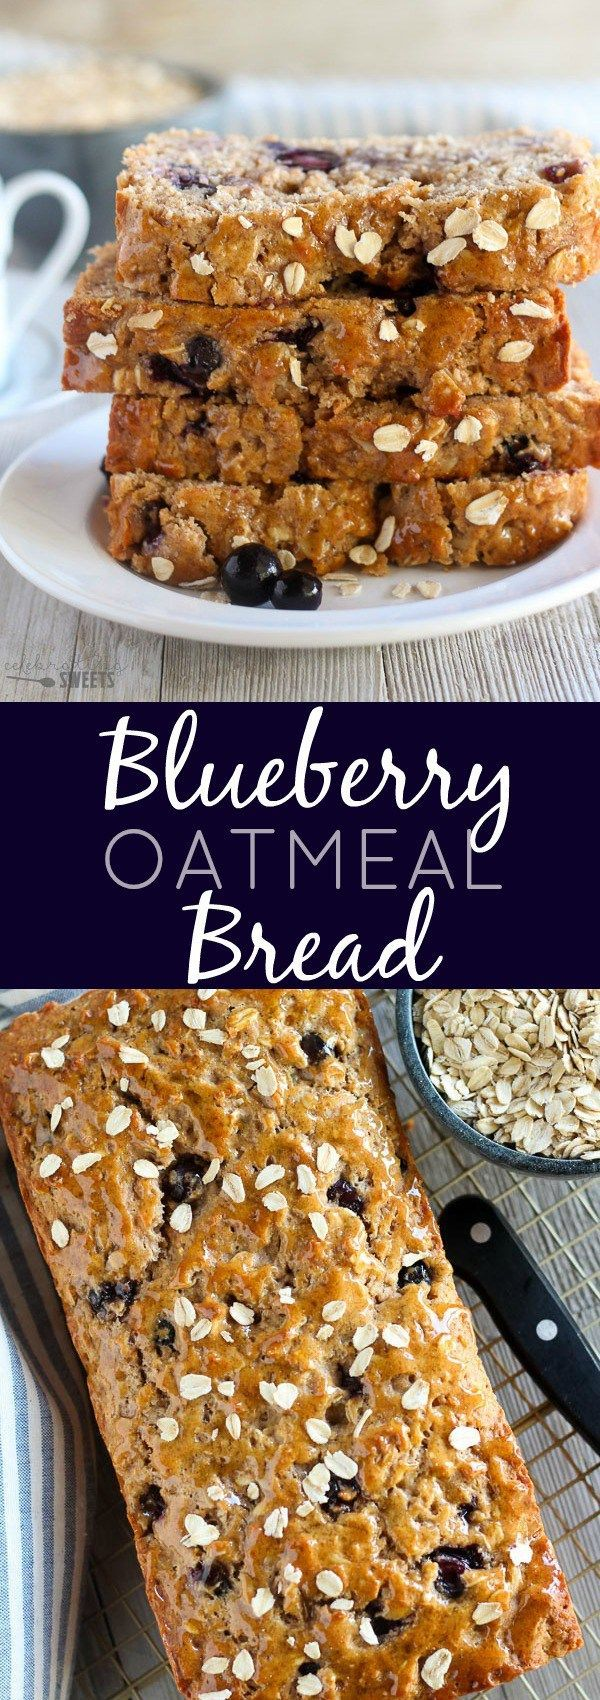 Blueberry Oatmeal Bread - Whole grain oatmeal quick bread filled with fresh blueberries. A wholesome breakfast, snack or dessert.